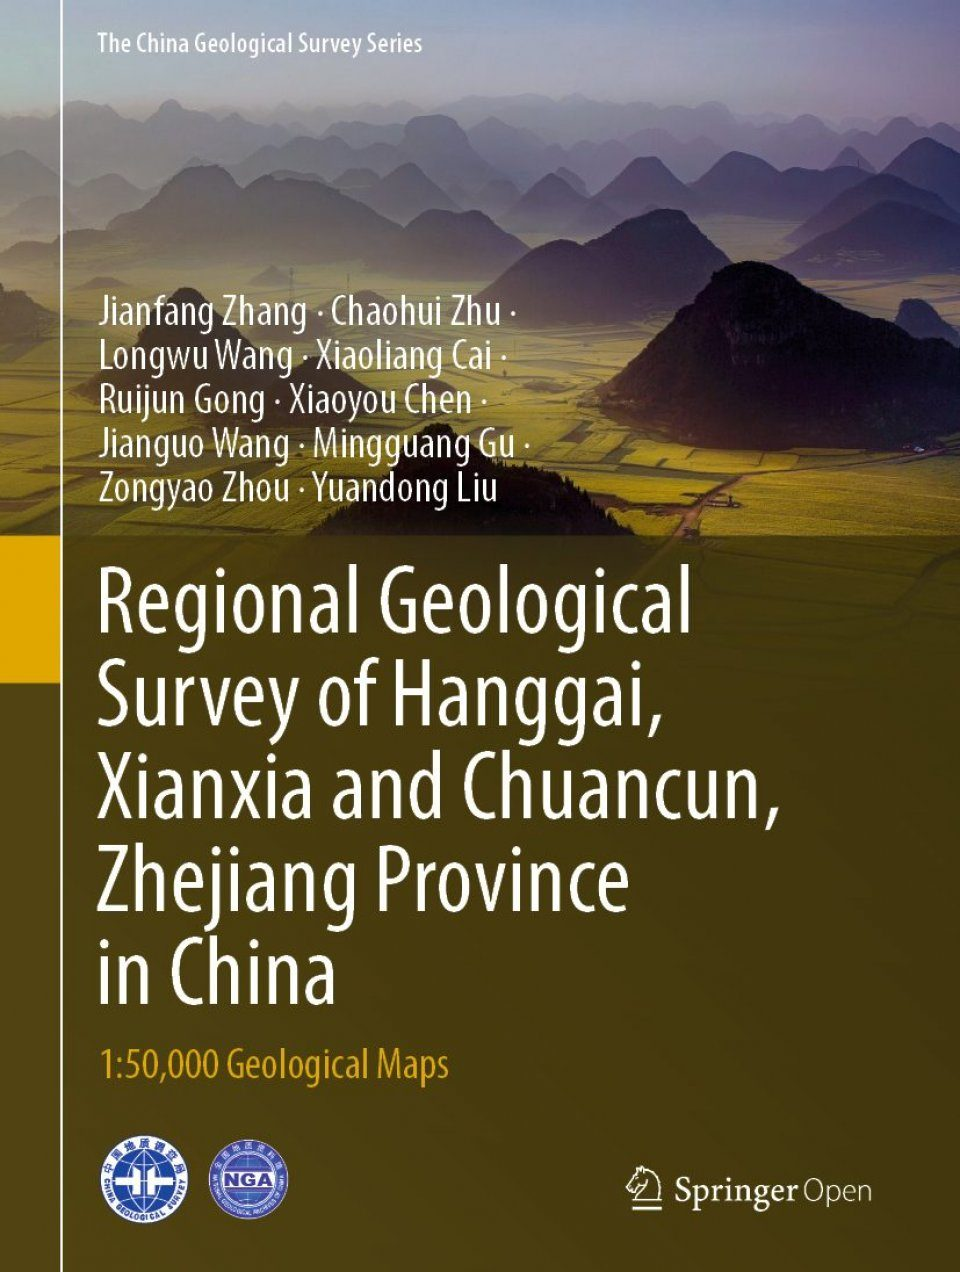 Regional Geological Survey of Hanggai, Xianxia and Chuancun, Zhejiang Province in China